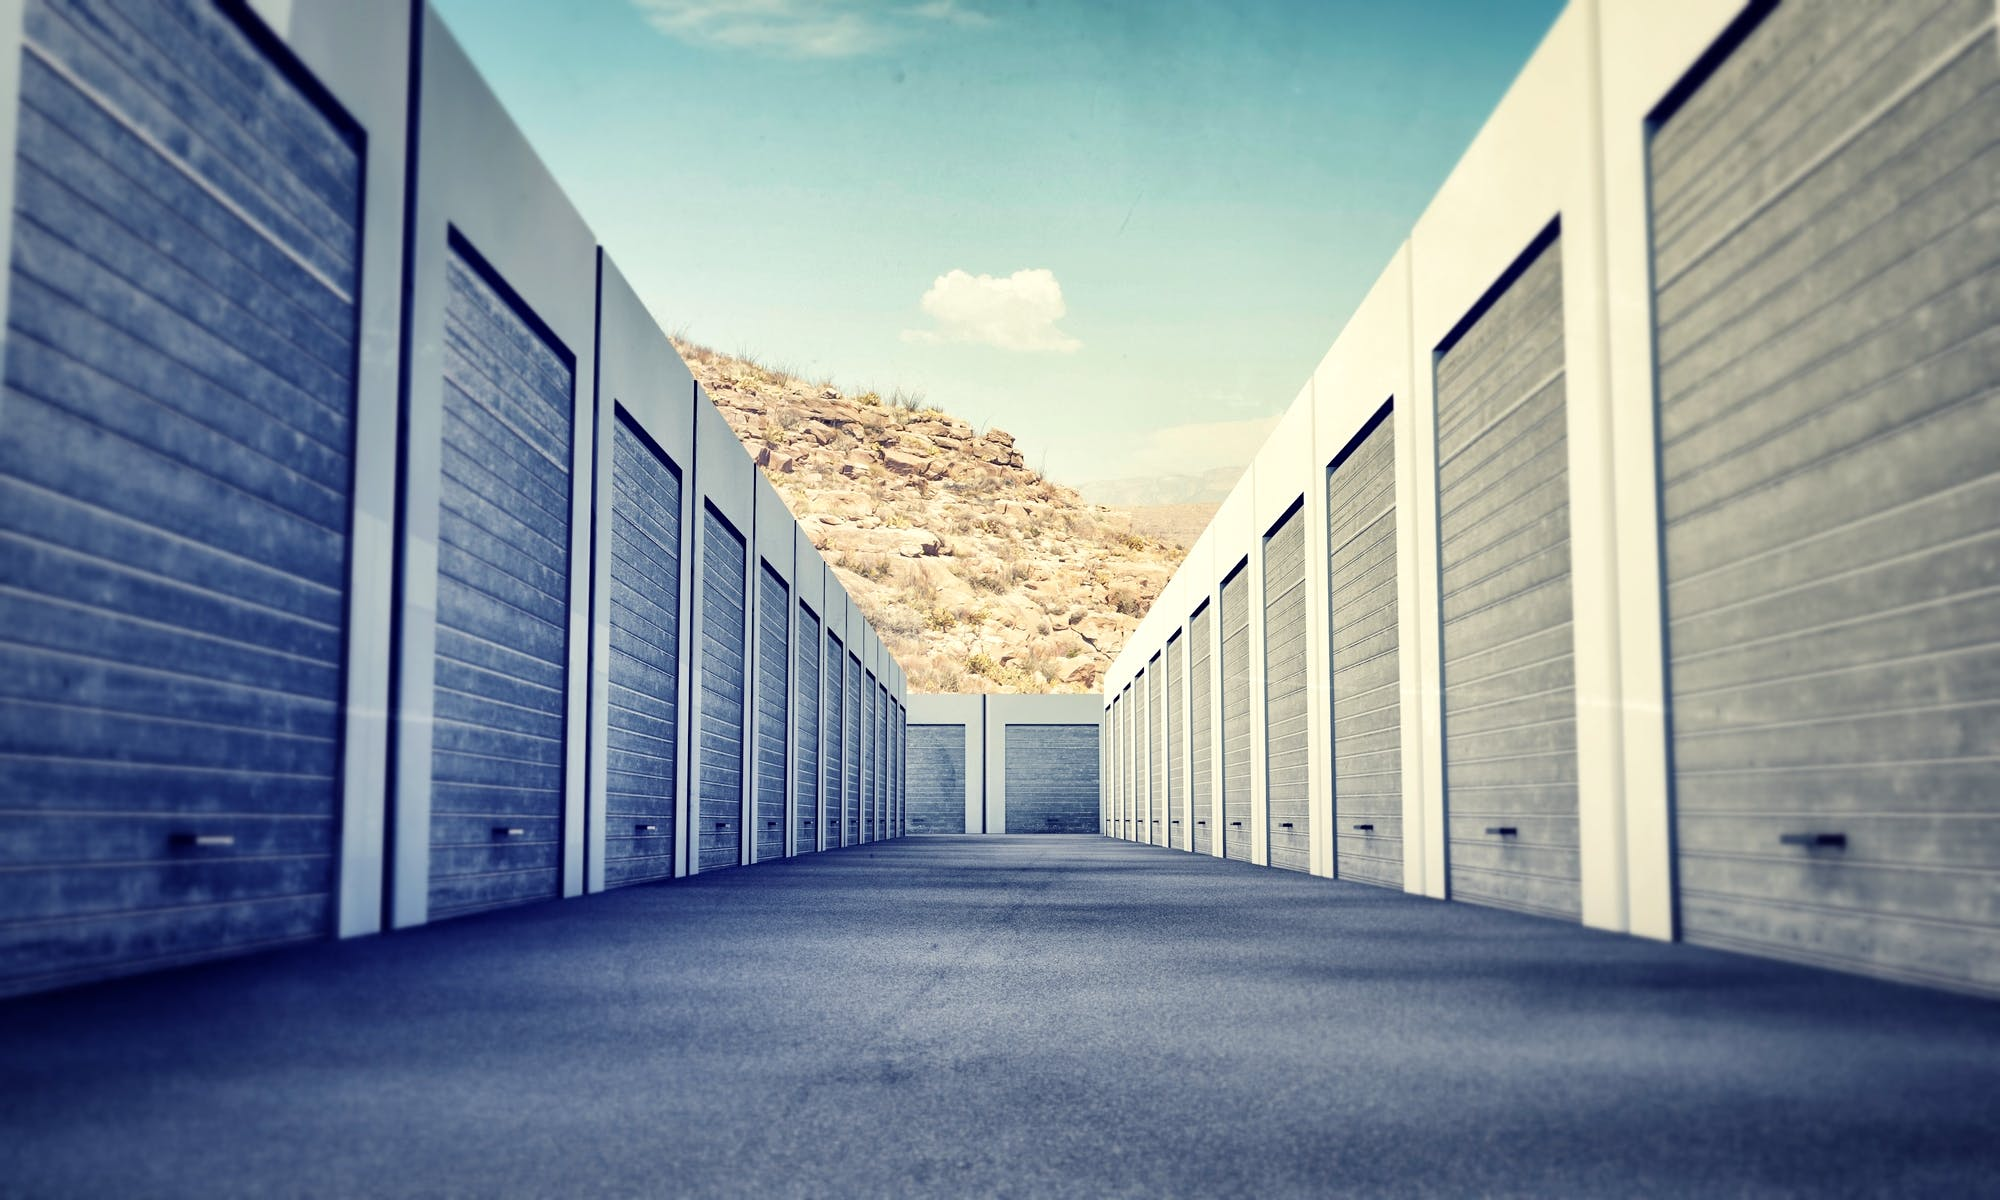 How to Invest in Self-Storage Real Estate